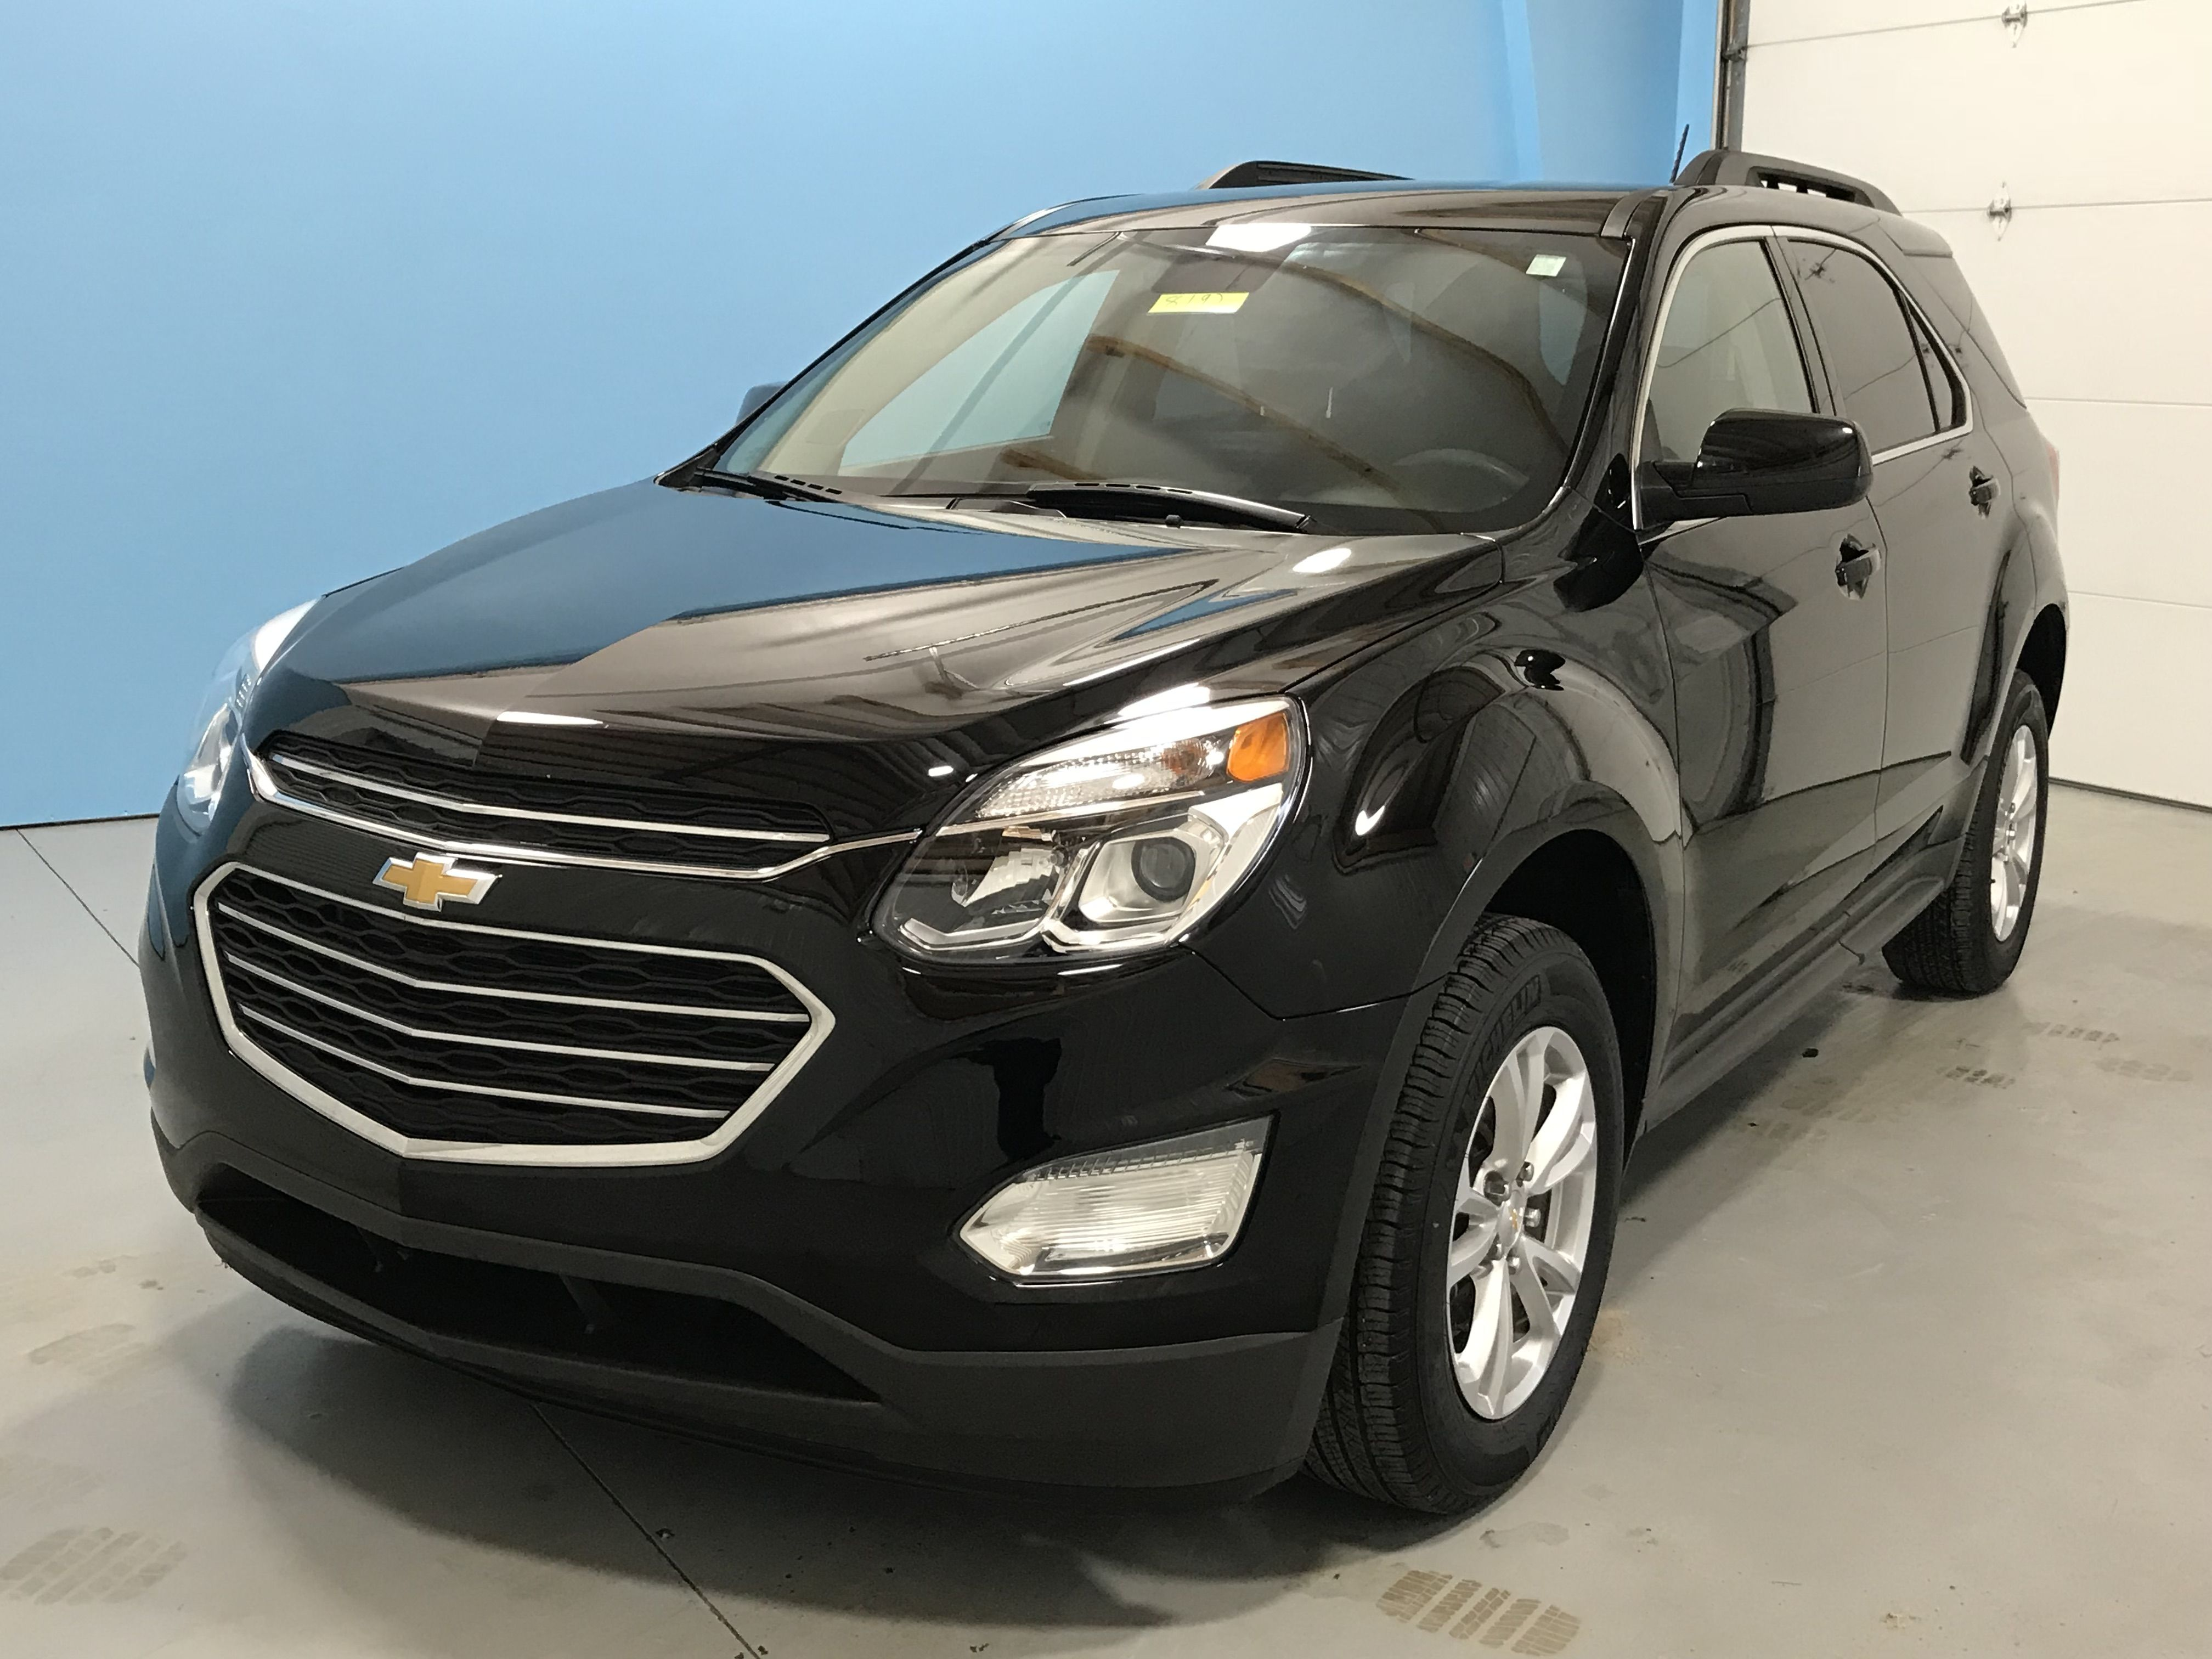 This 2016 Chevrolet Equinox Lt One Owner No Accidents Rearview Camera Low Miles 17 Aluminum Wheel With Images Chevy Equinox Chevrolet Equinox Rear View Camera